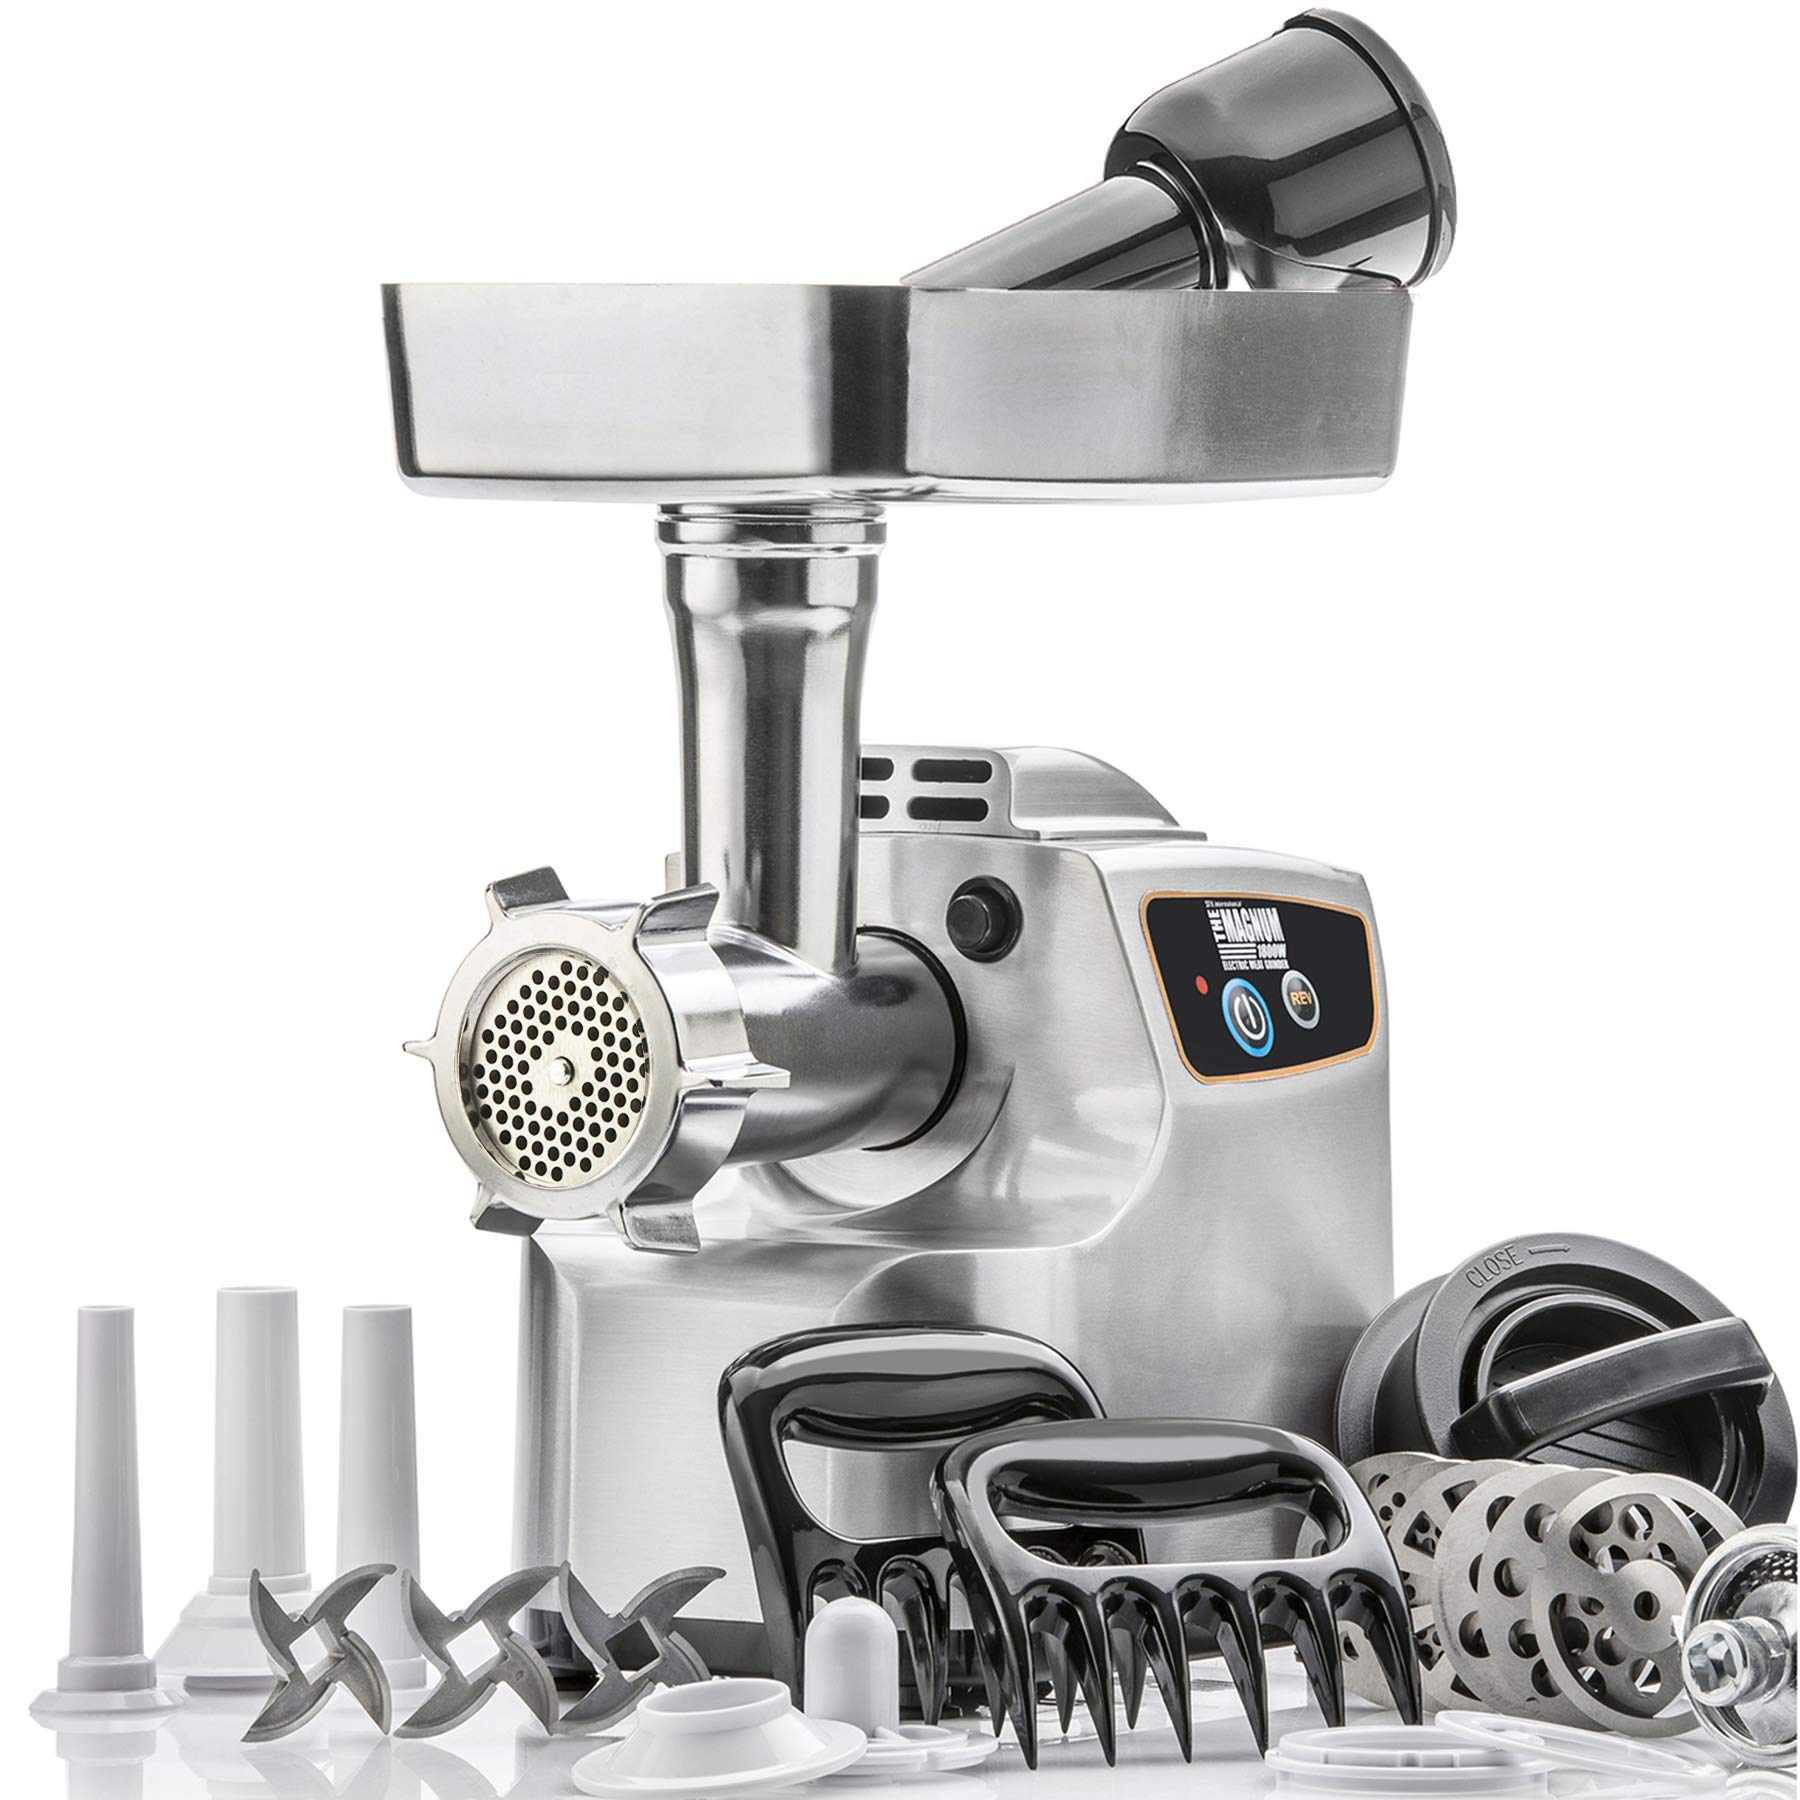 STX International ''Gen 2 - Platinum Edition'' Magnum 1800W Heavy Duty Electric Meat Grinder - High Capacity Meat Tray, 6 Grinding Plates, 3 S/S Blades, 3 Sausage Tubes, 1 Kubbe Maker and Much More by STX INTERNATIONAL